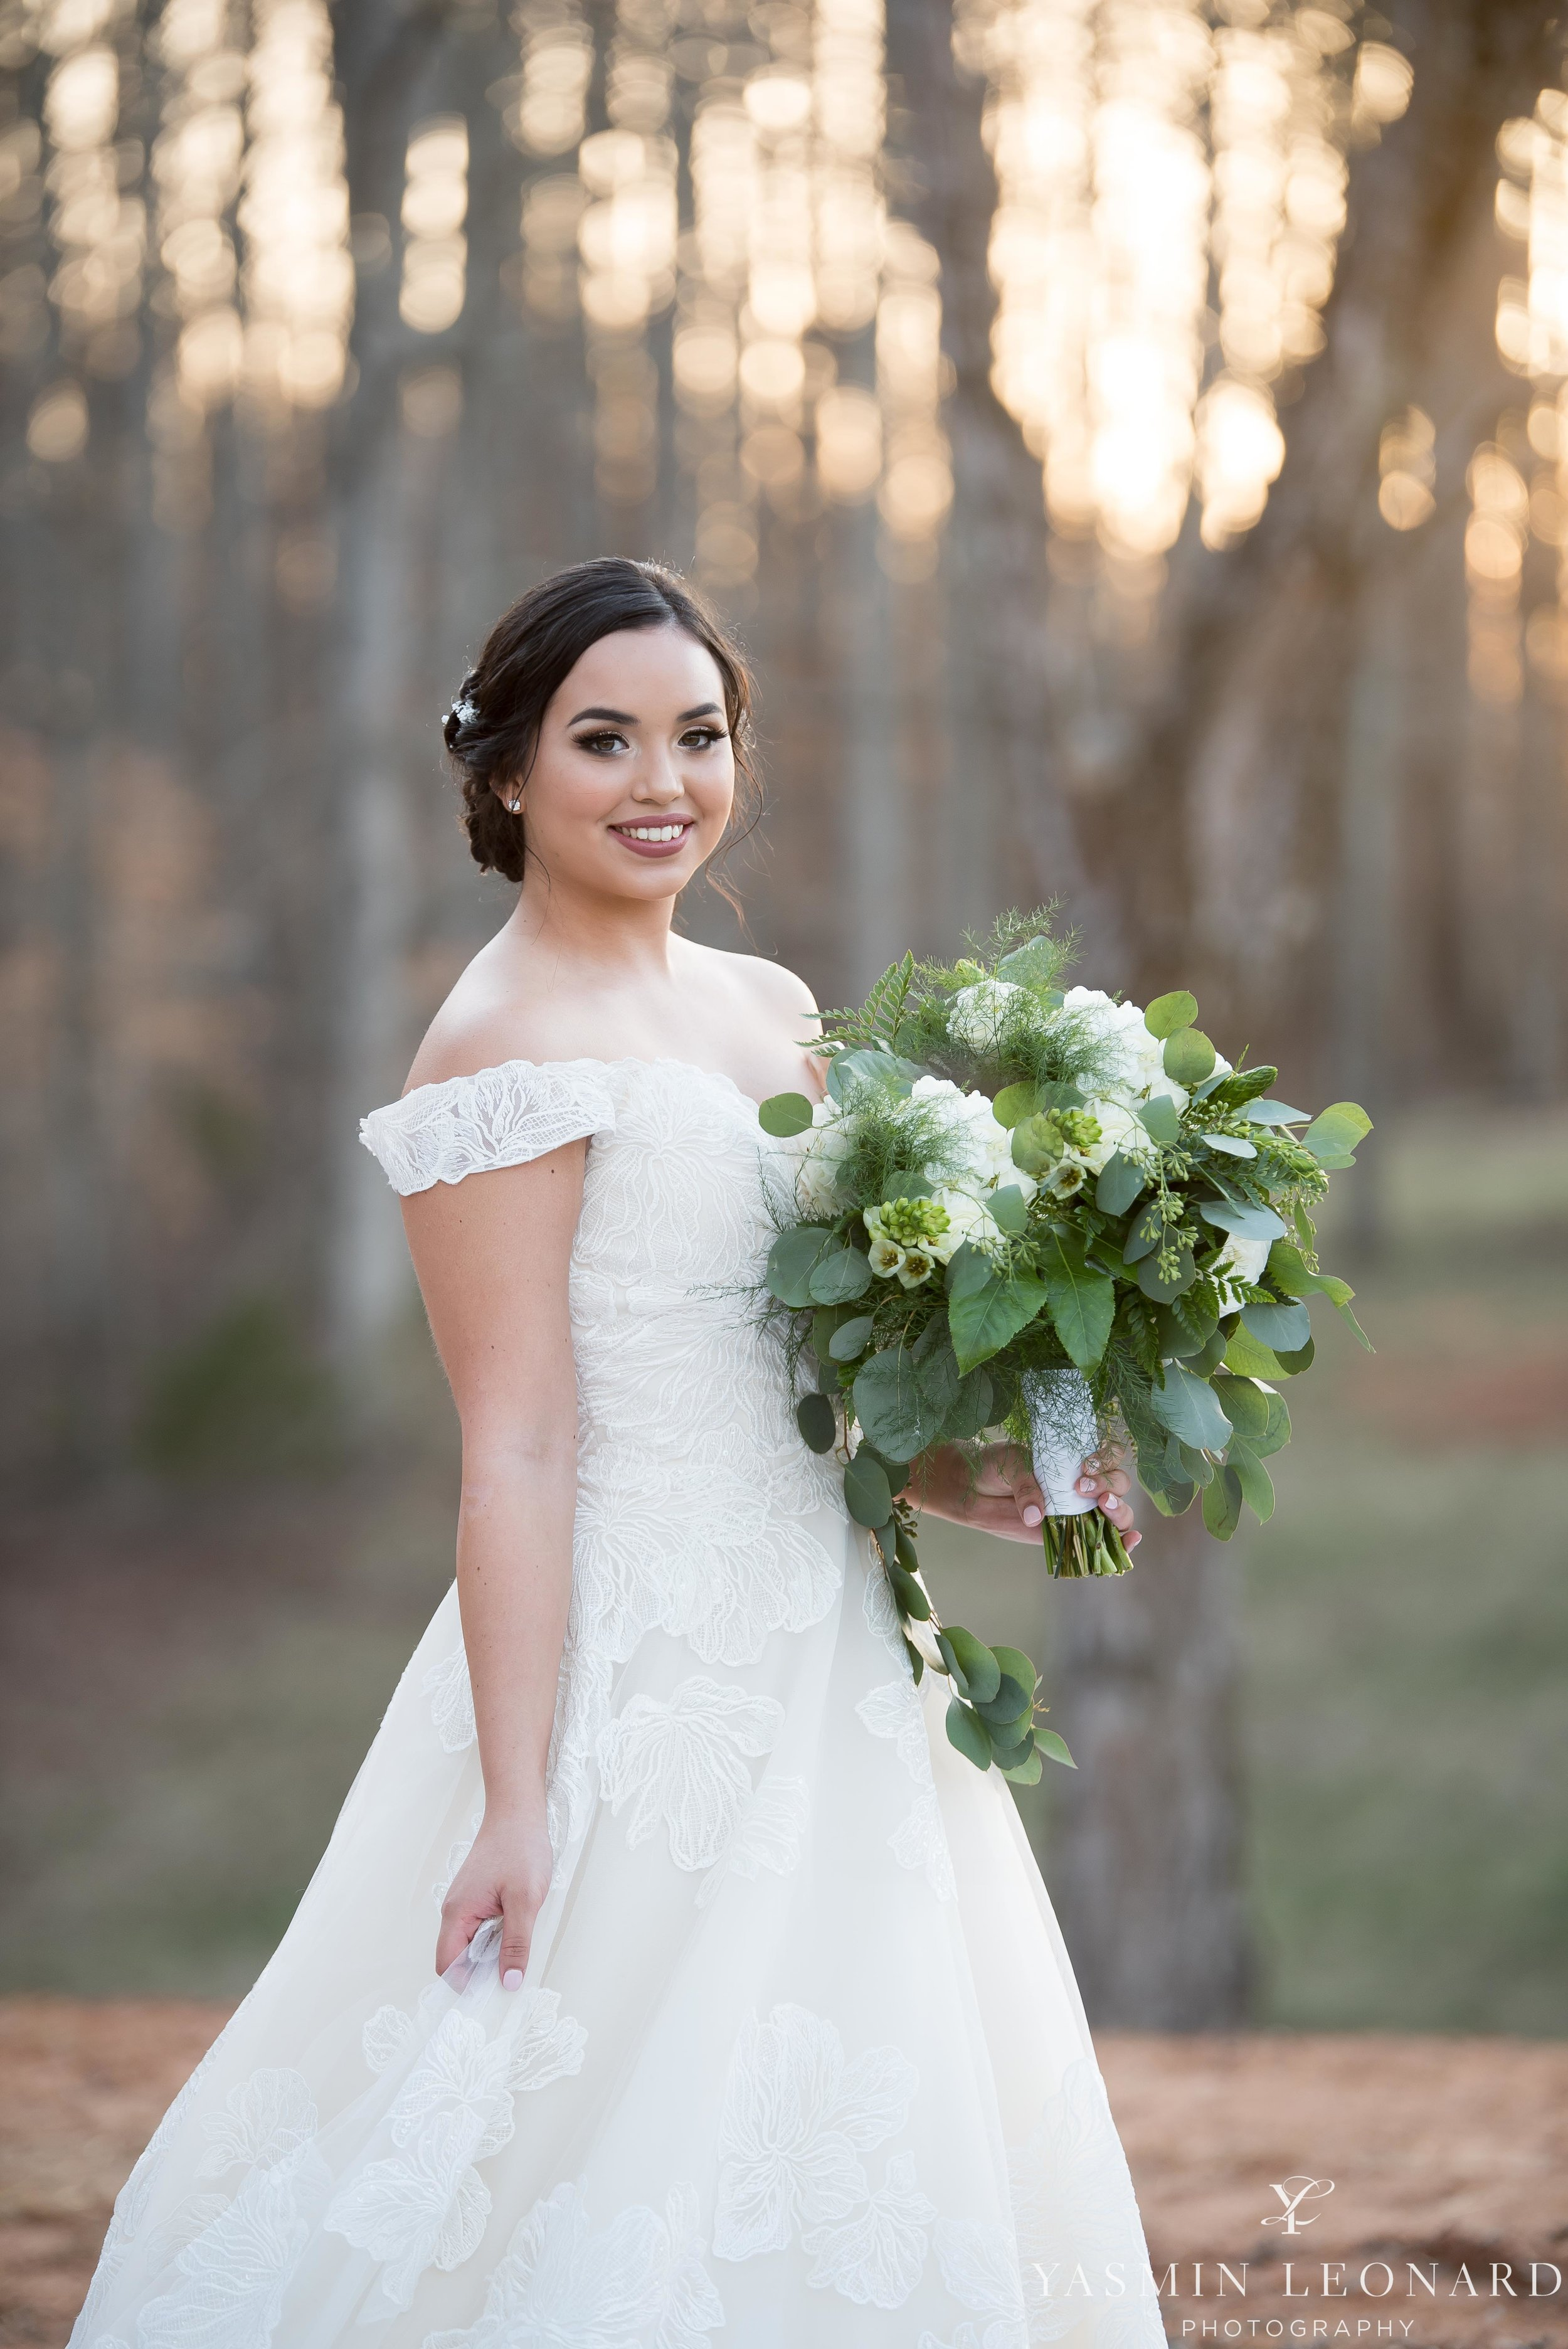 Old Homeplace Vineyard - Grits and Glitter - Dashing Dames Bridal Boutique - Just Priceless - Yasmin Leonard Photography - High Point Weddings - NC Weddings - NC Wedding Venues - High Point Jewelers - NC Wines - NC Vineyards - Cupcake Cuties-106.jpg